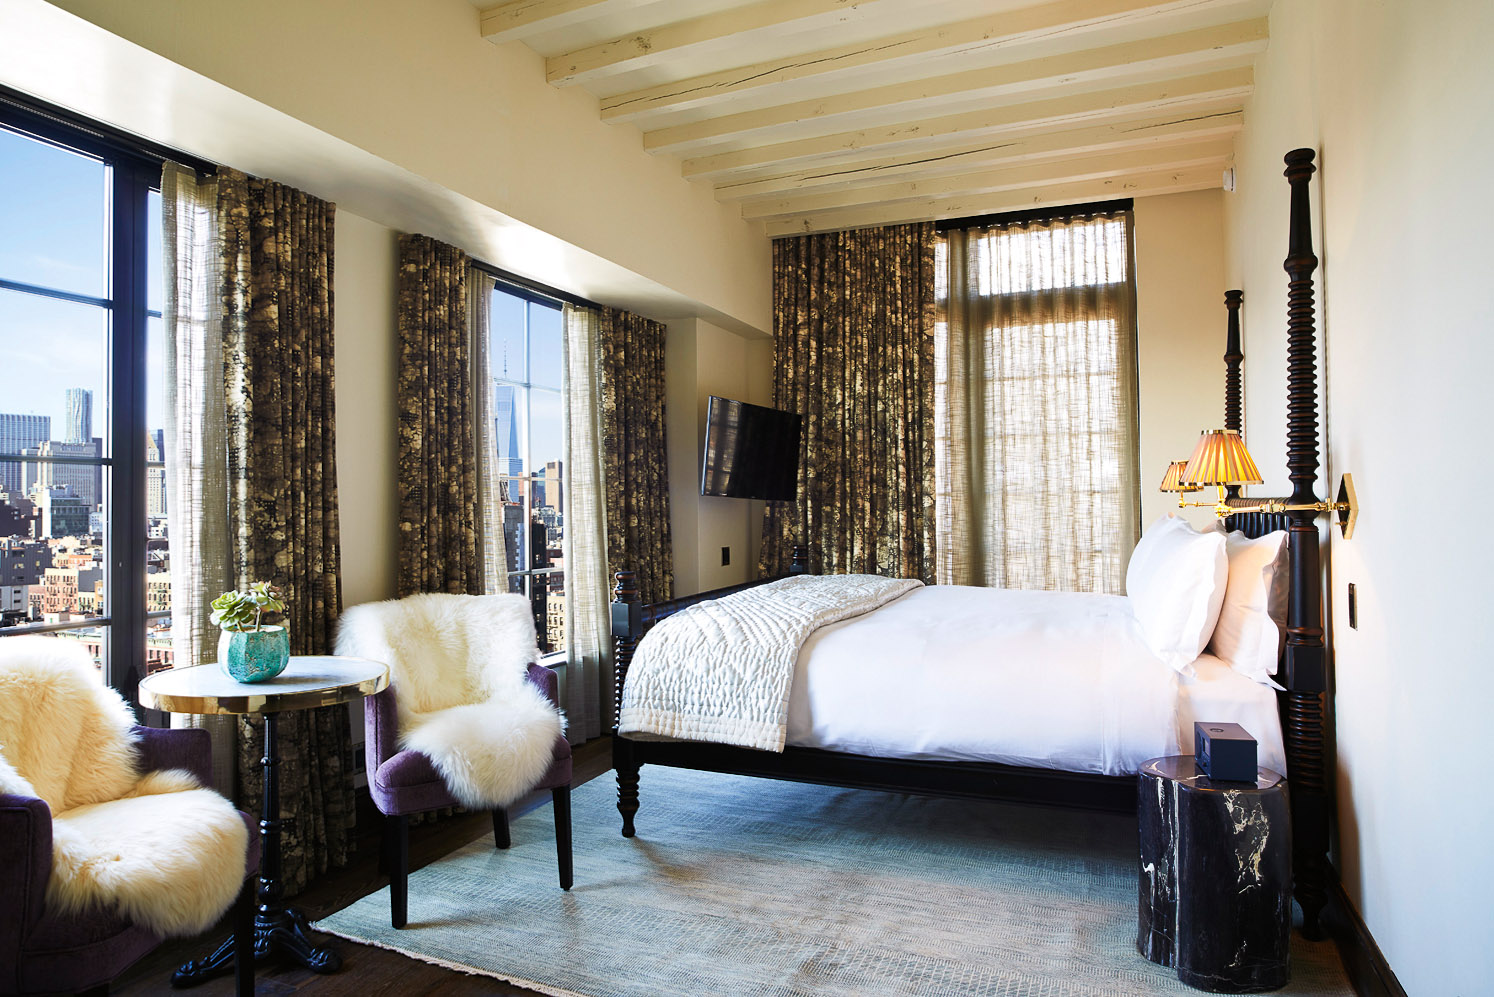 Ludlow Hotel - Chic boutique hotel with a loft-industrial vibe